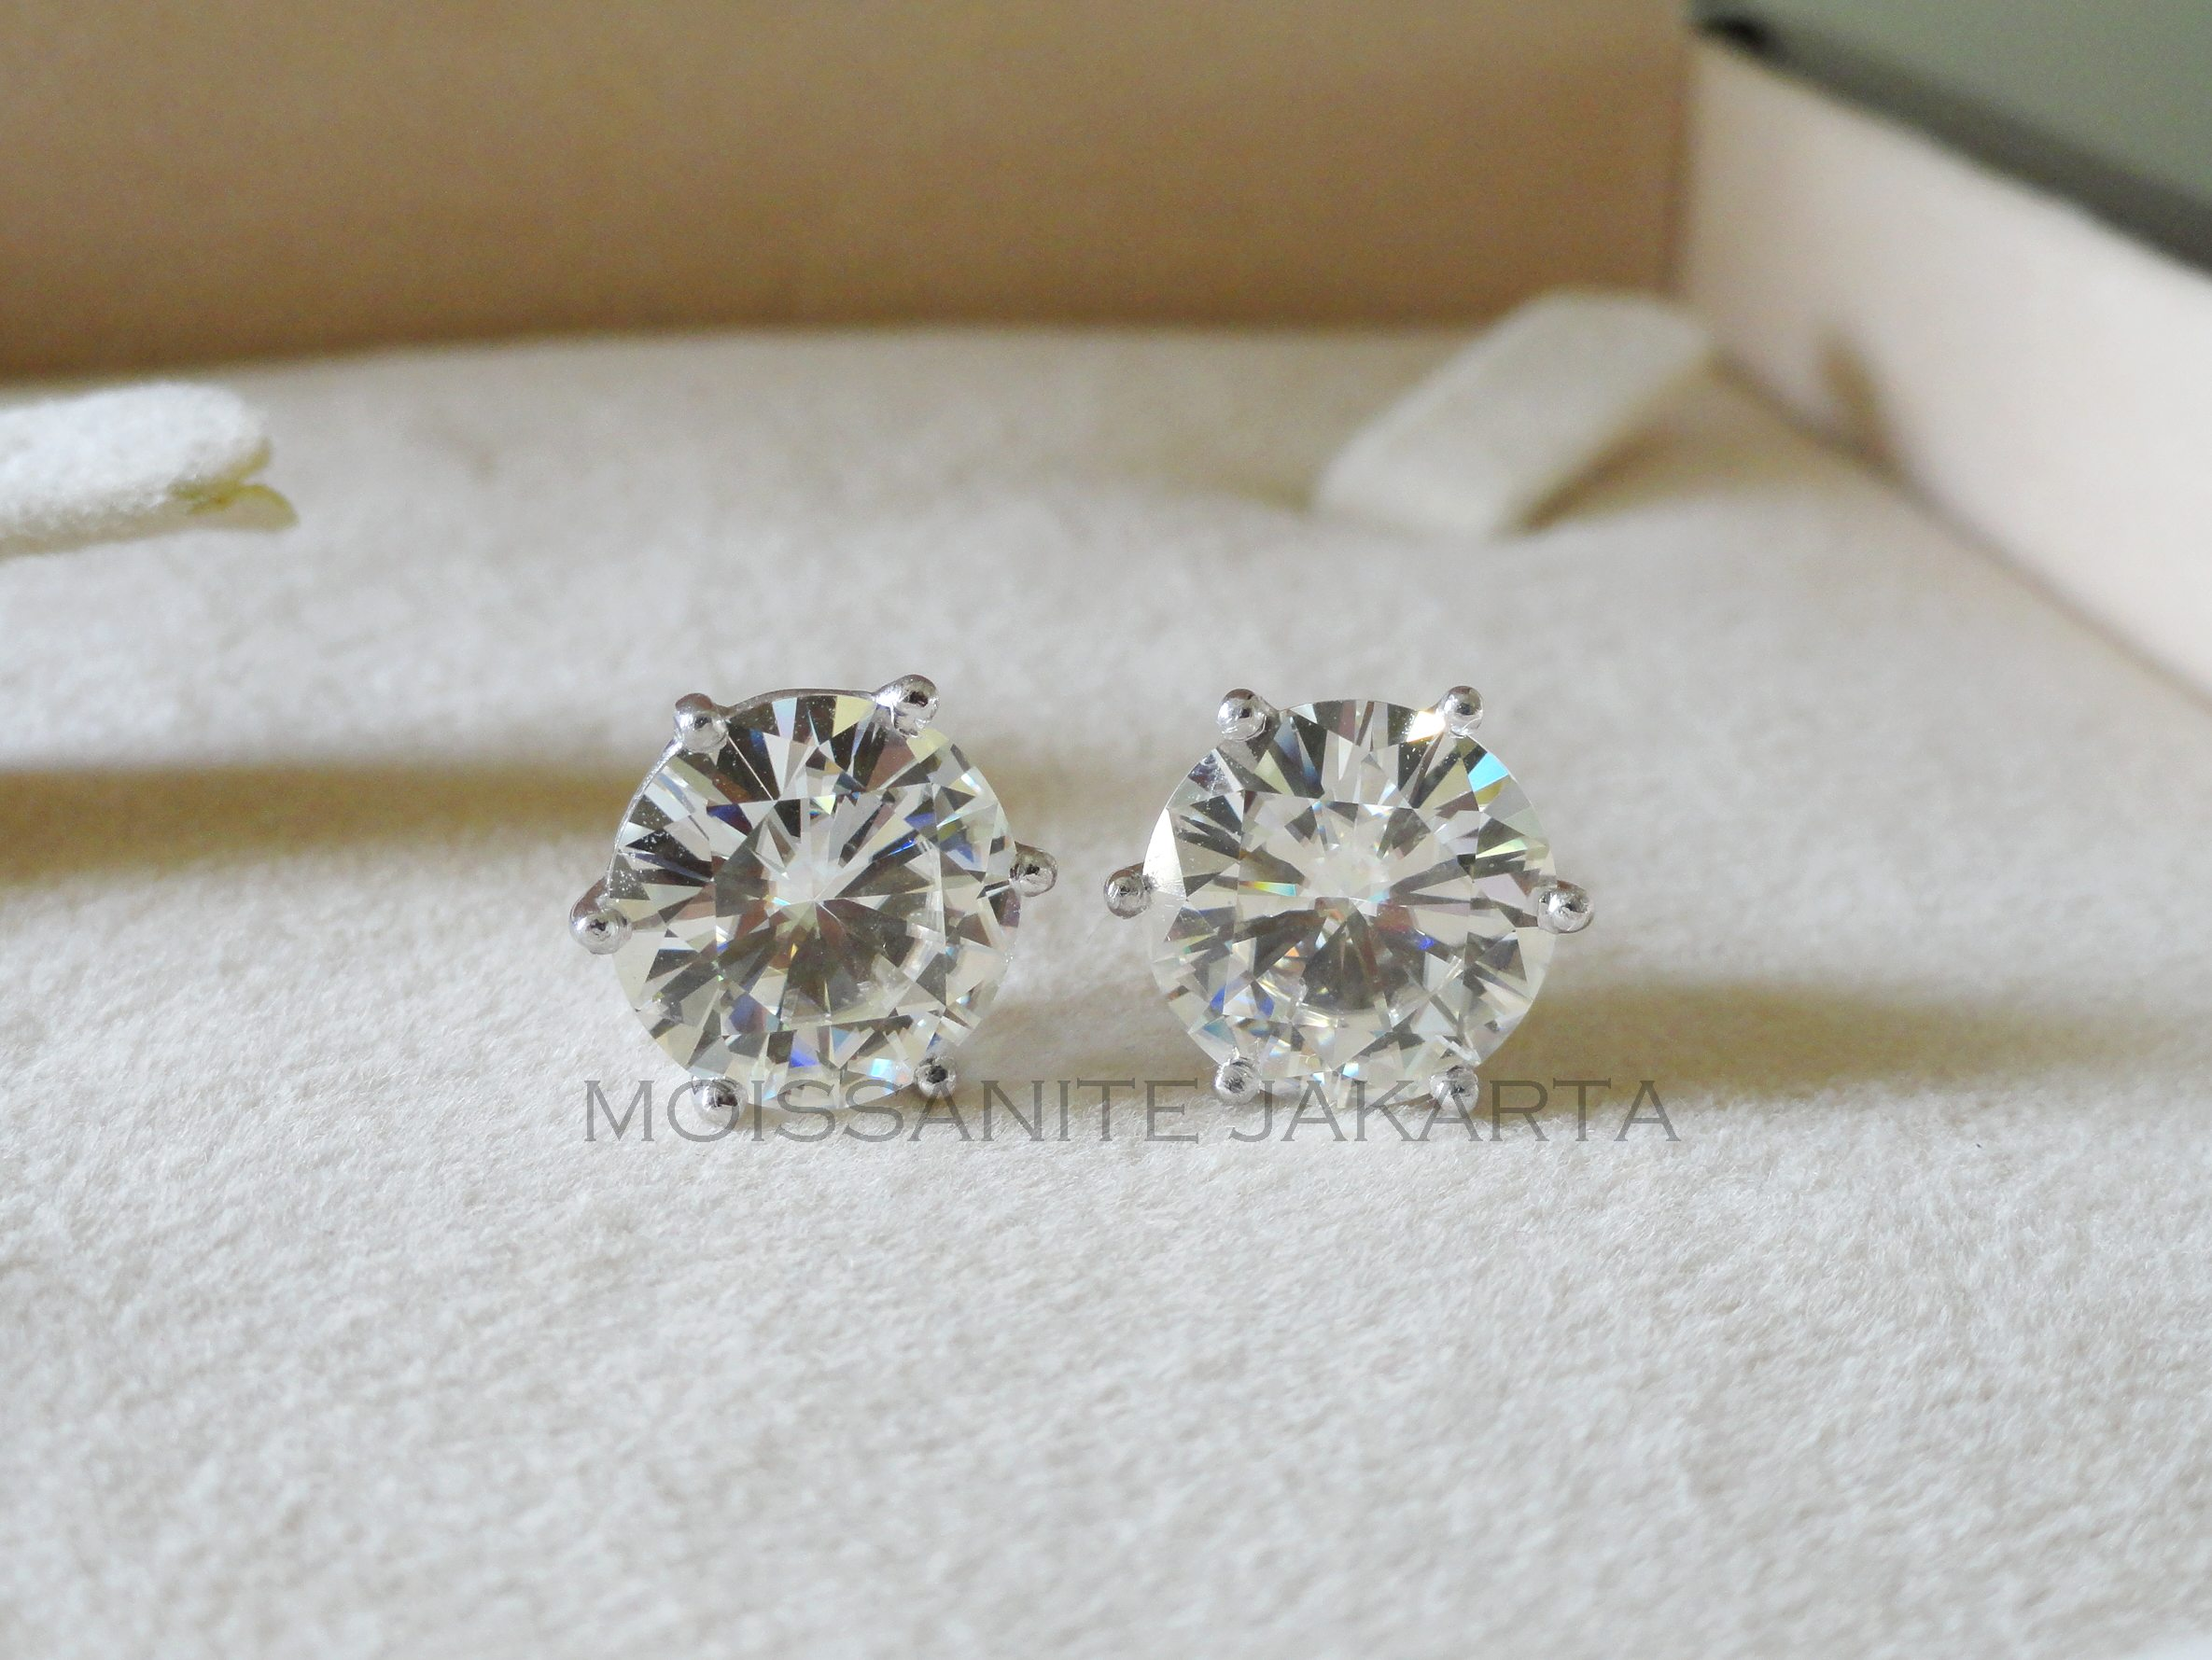 moissanite white prong jewellery earrings shaped heart moissy products fine